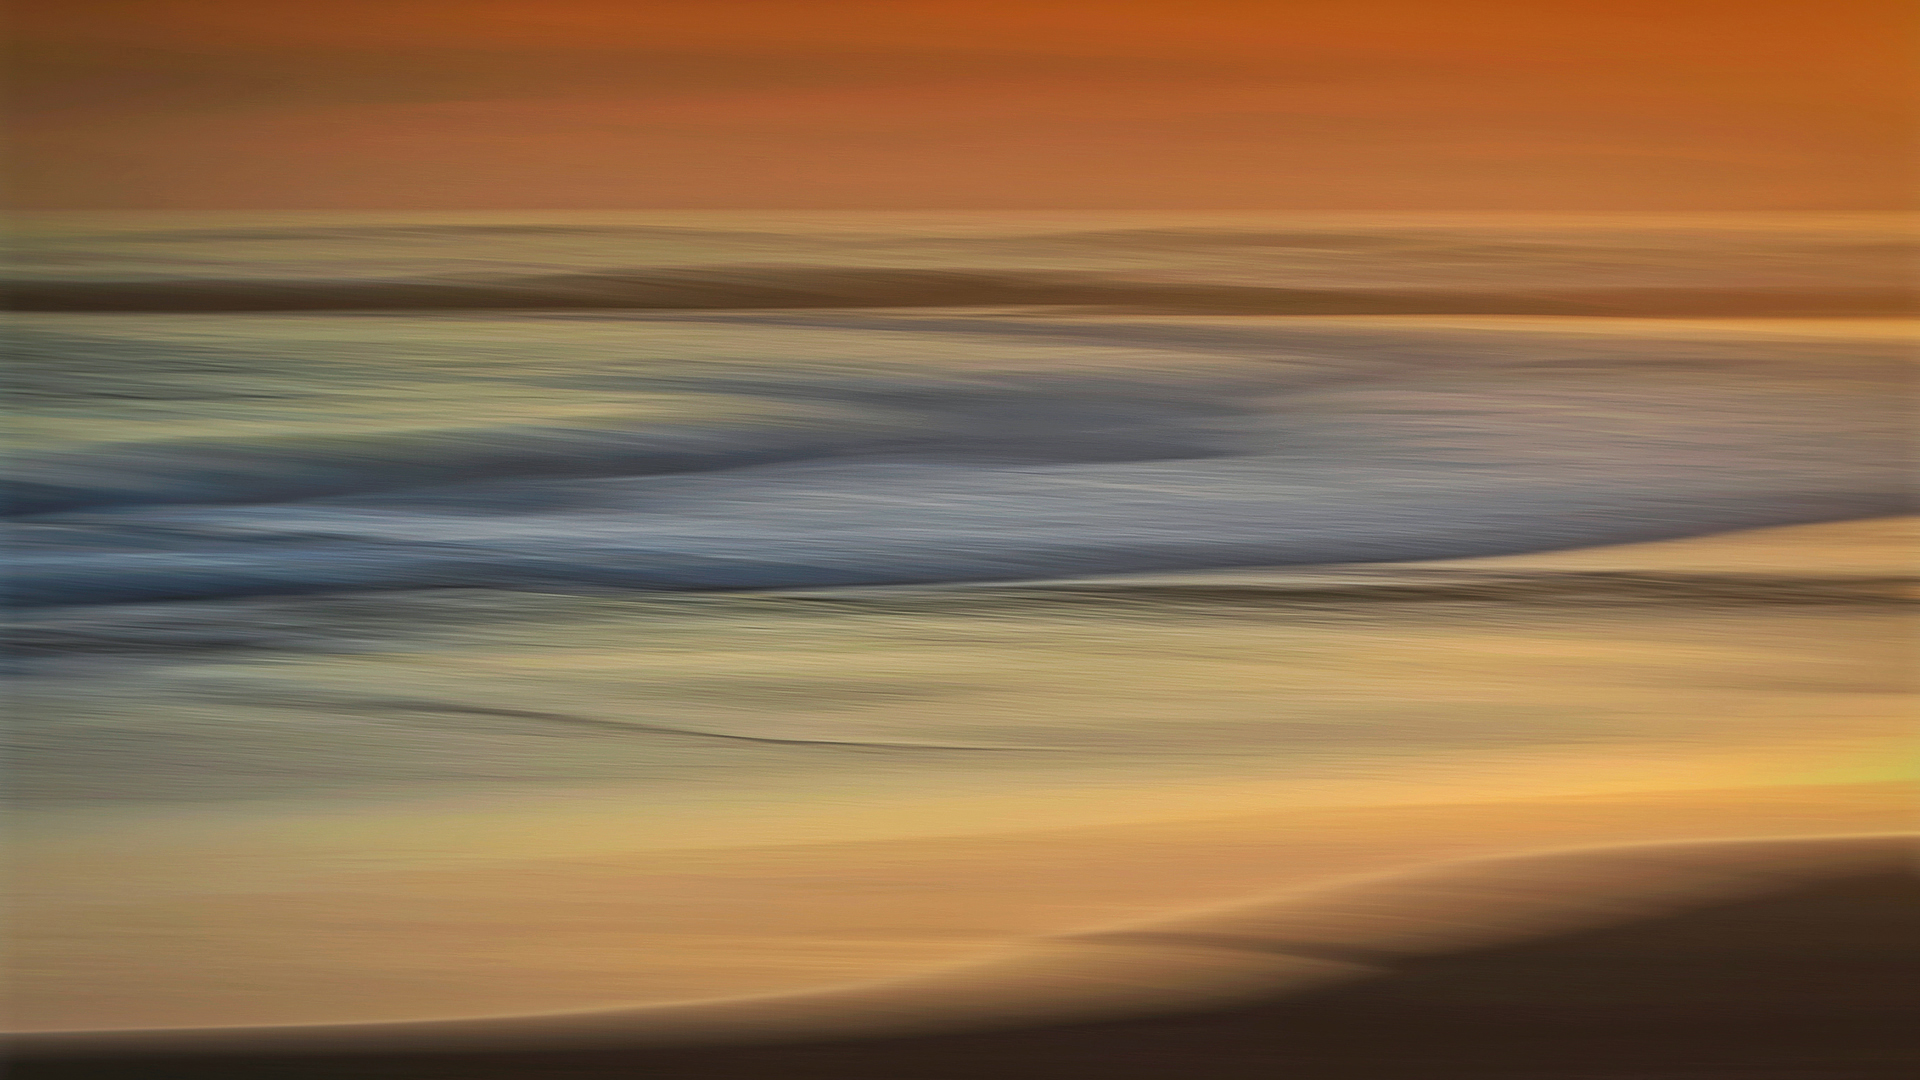 Sunset colours of a sea in motion